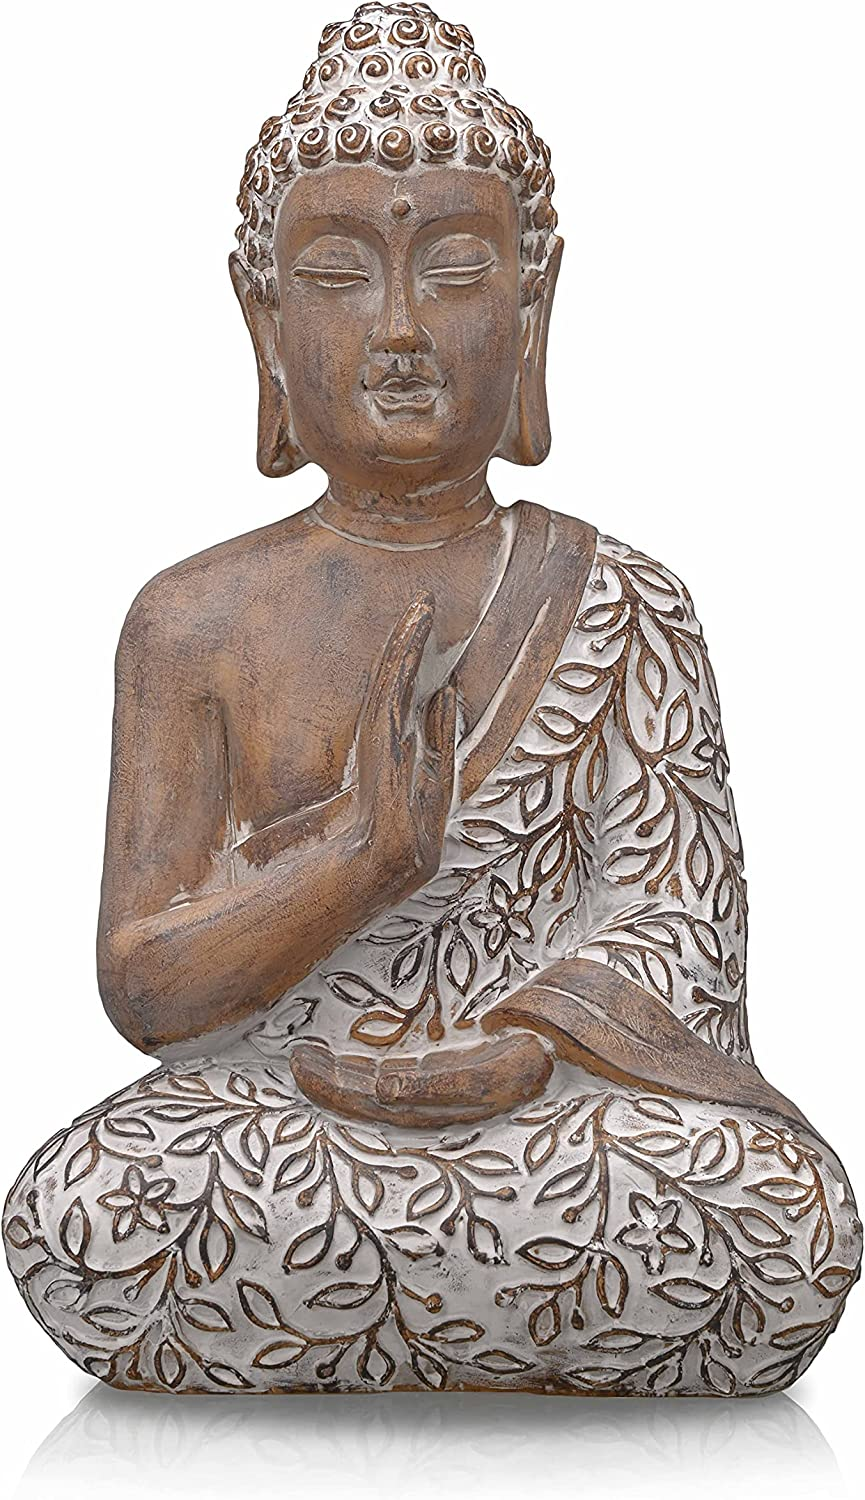 TERESA'S COLLECTIONS Large Meditating Buddha Statue for Home Decor, Rustic Zen Decor Serene Resin Yoga Sculpture, Antique Collectible Figurine for Indoor Outdoor, 14.3